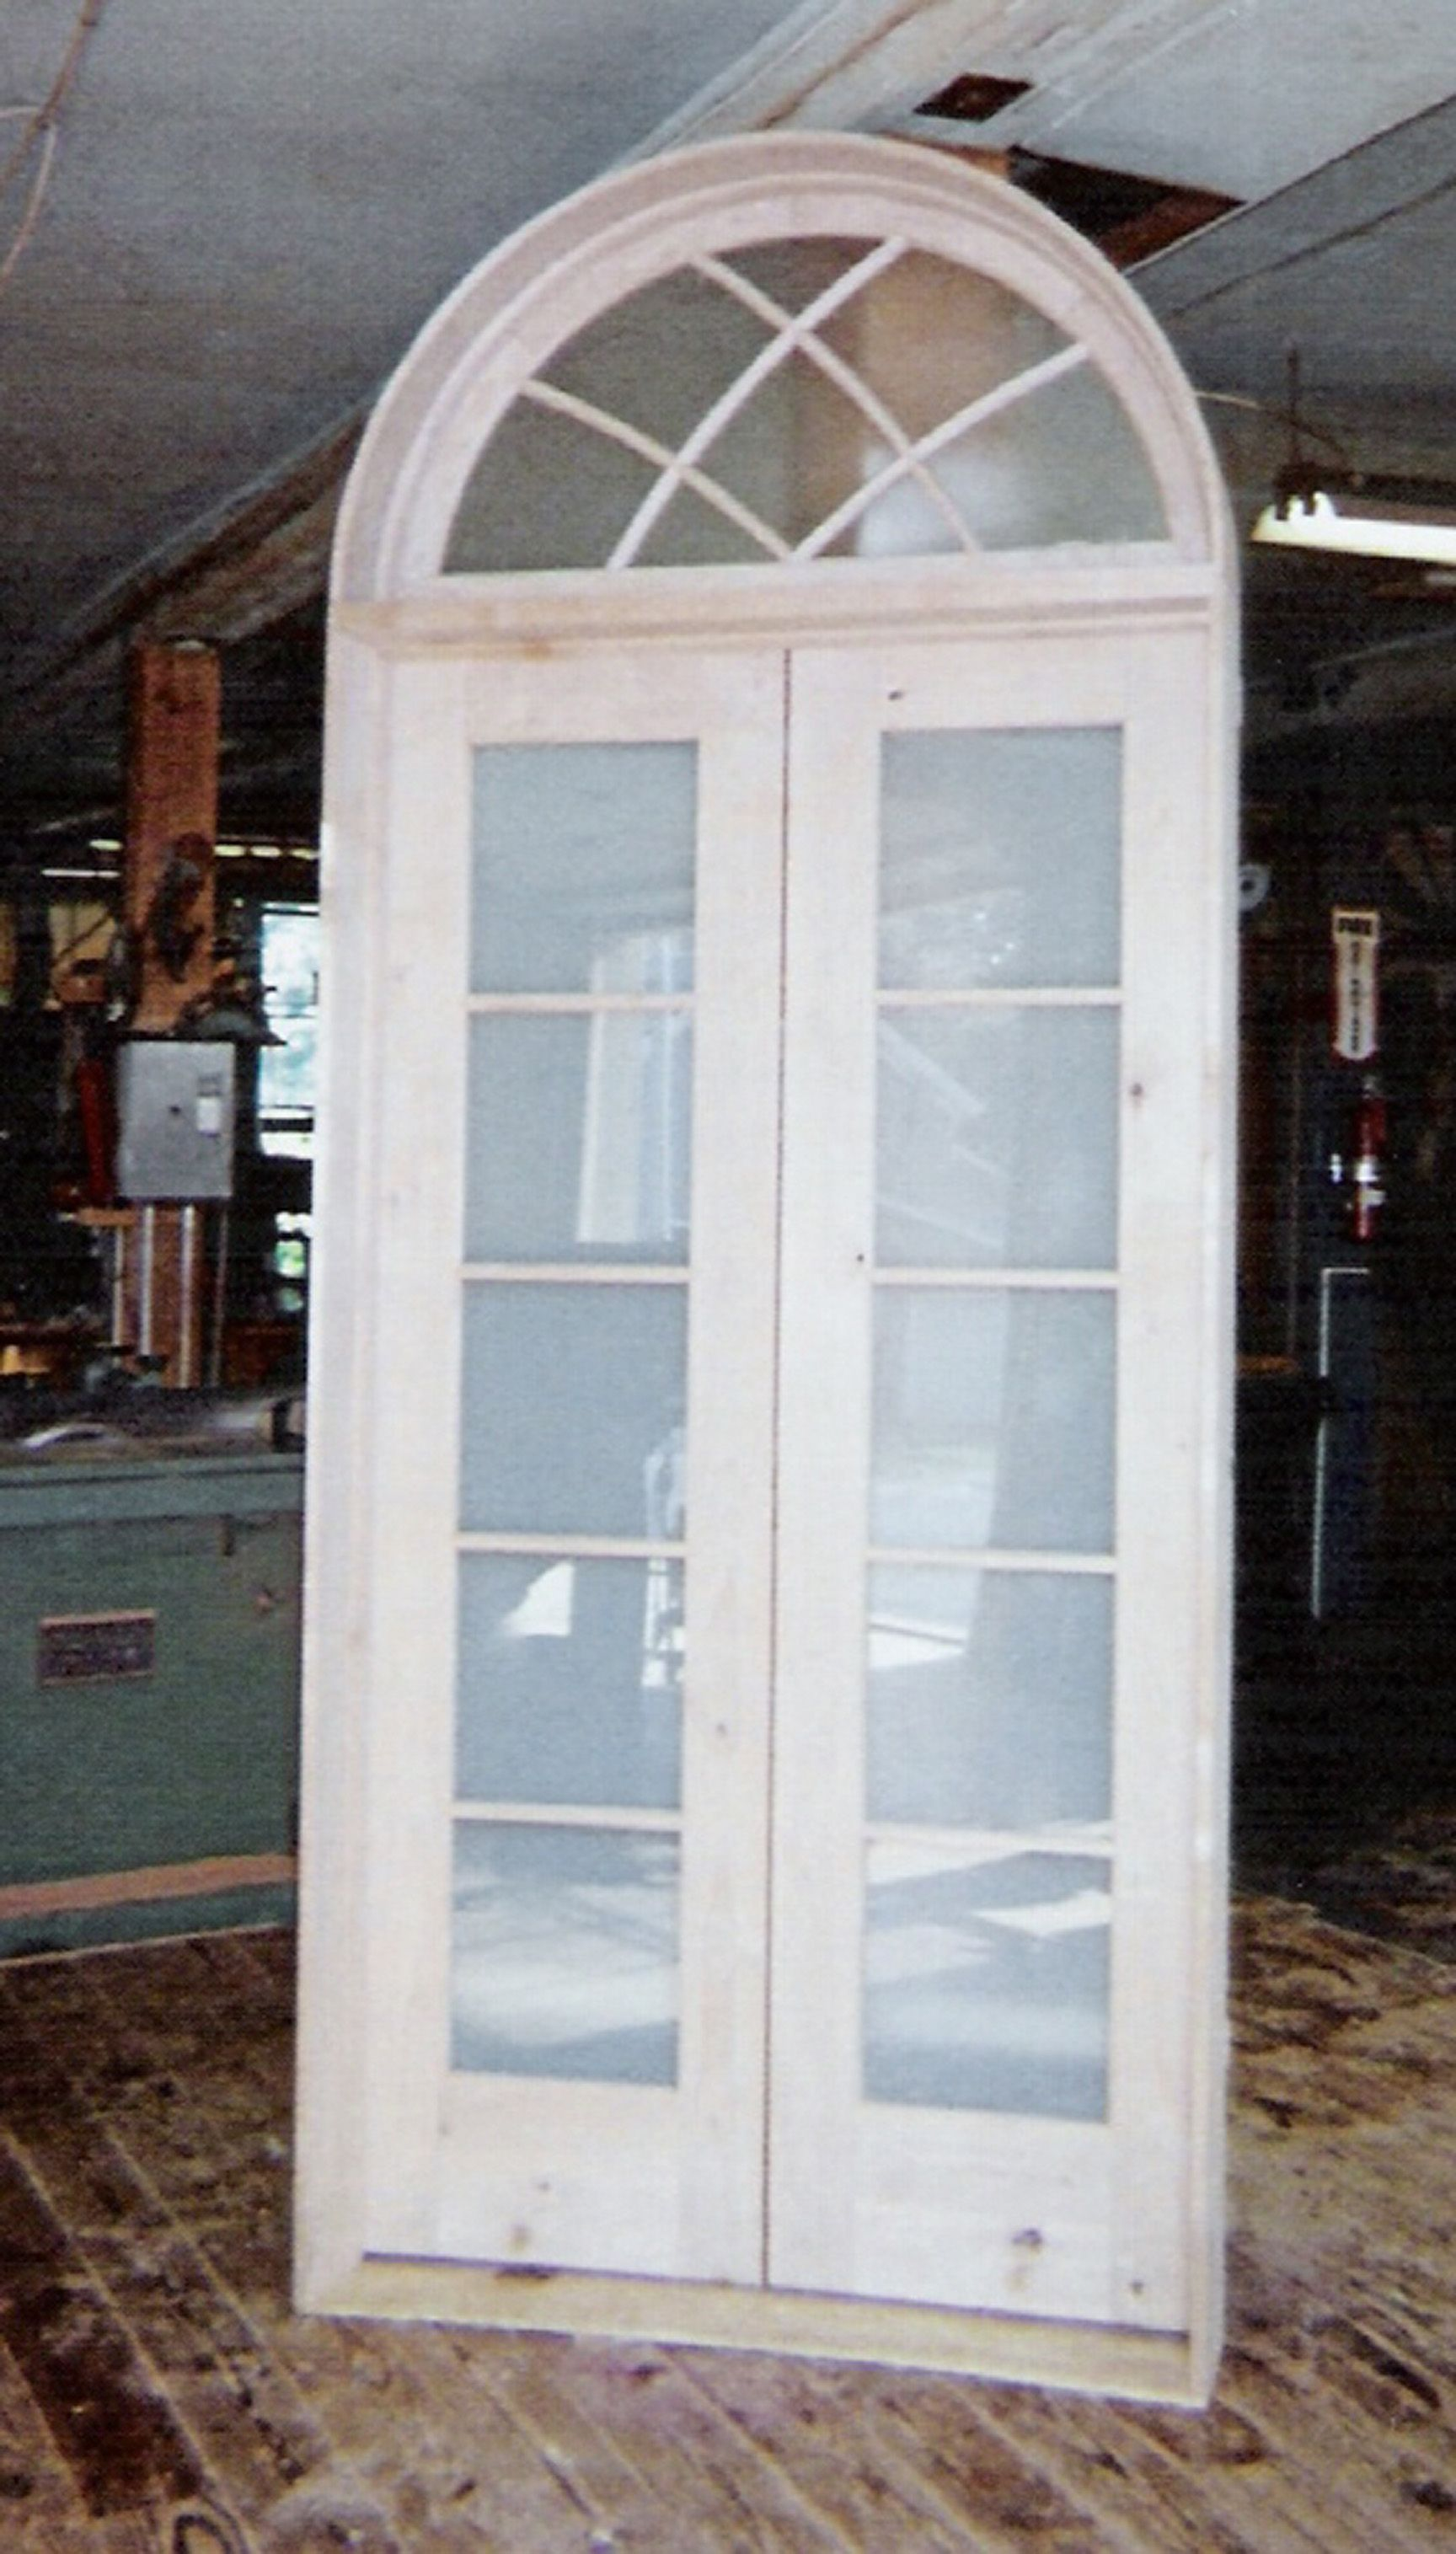 Arch top transom window gothic mullion interior double french door Arched Top Interior Double Doors on